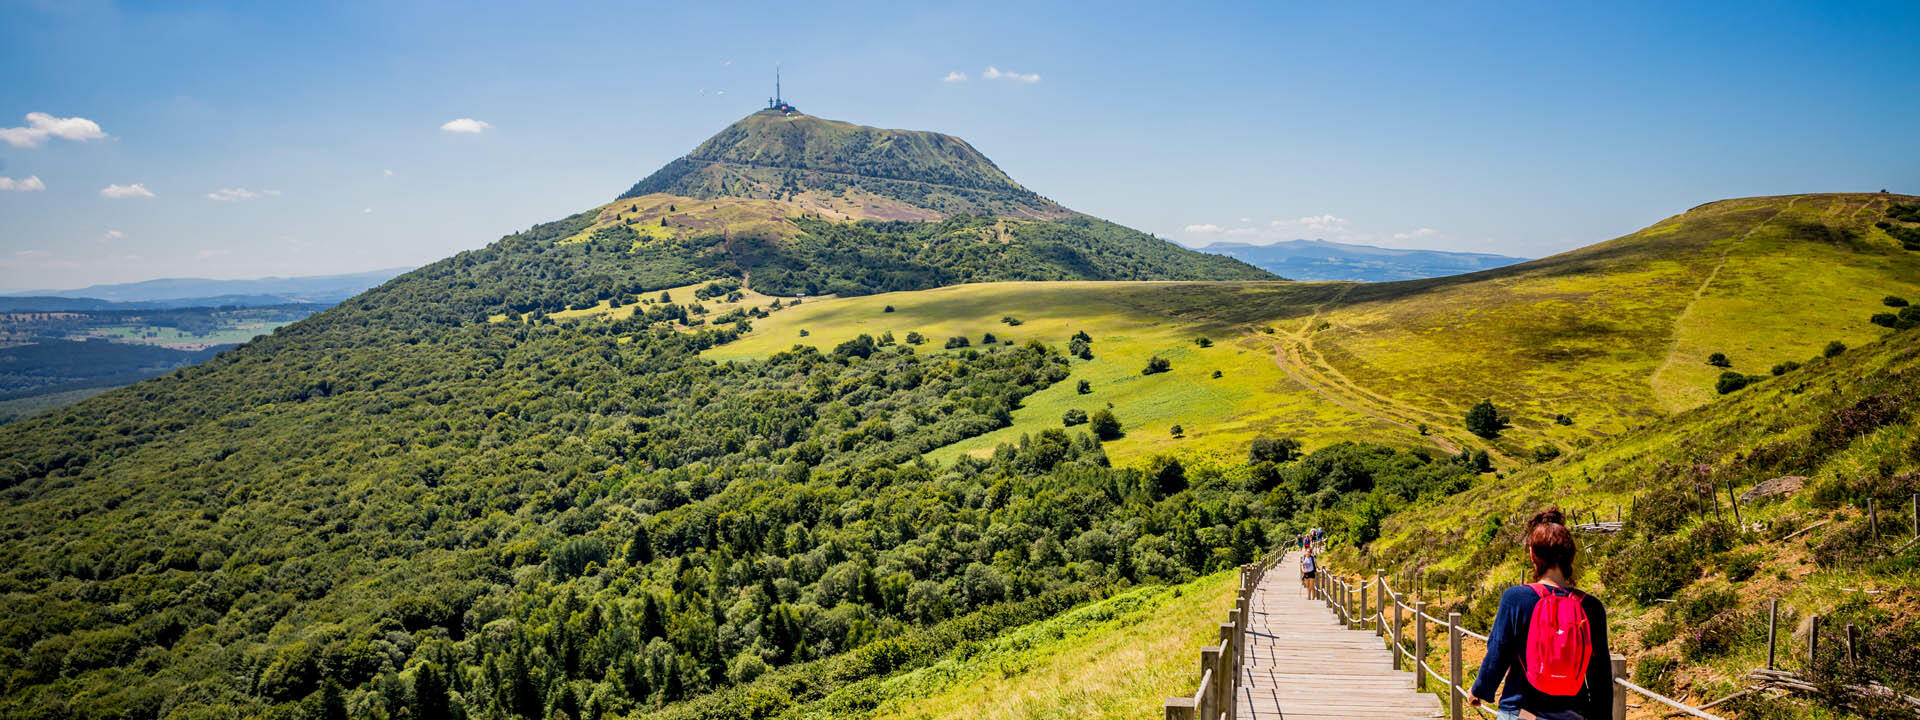 Explore the Auvergne Volcanoes Regional Nature Park